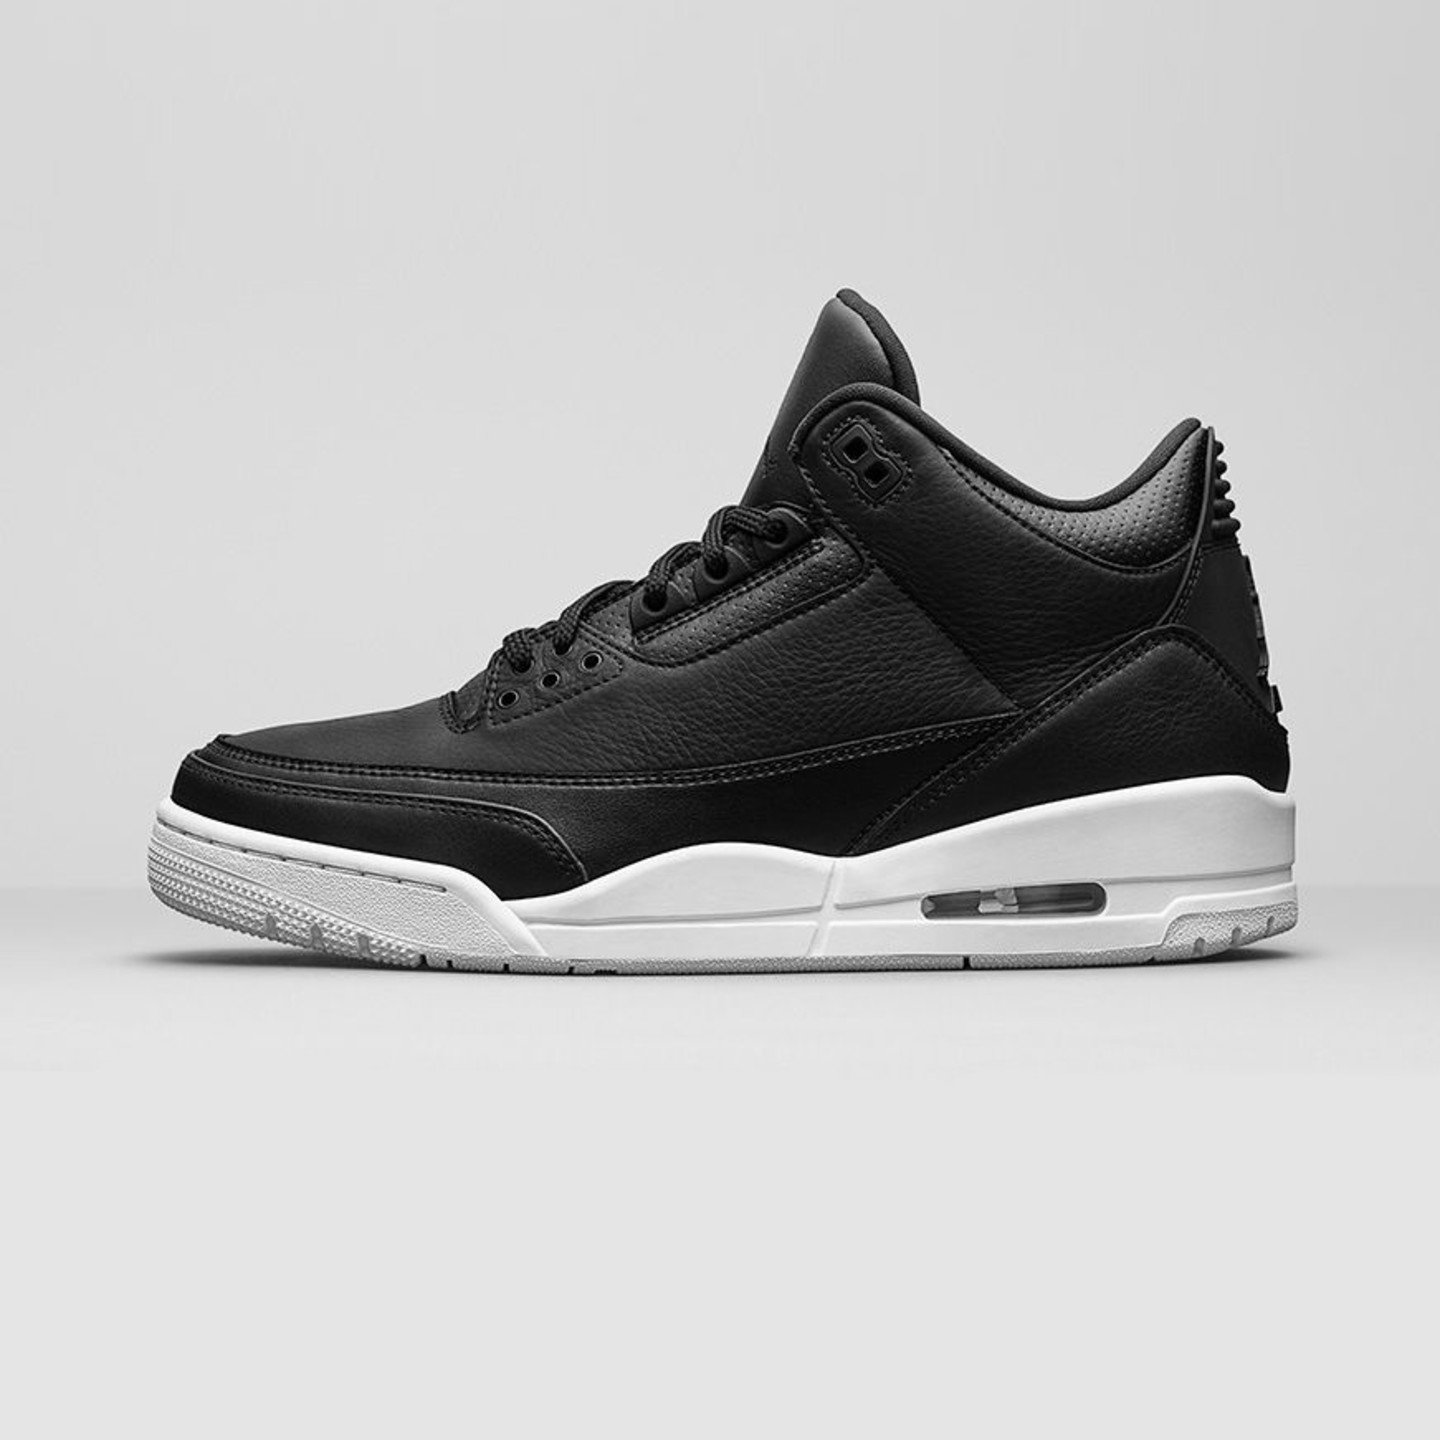 Jordan Air Jordan 3 Retro 'Cyber Monday' Black / White 136064-020-41